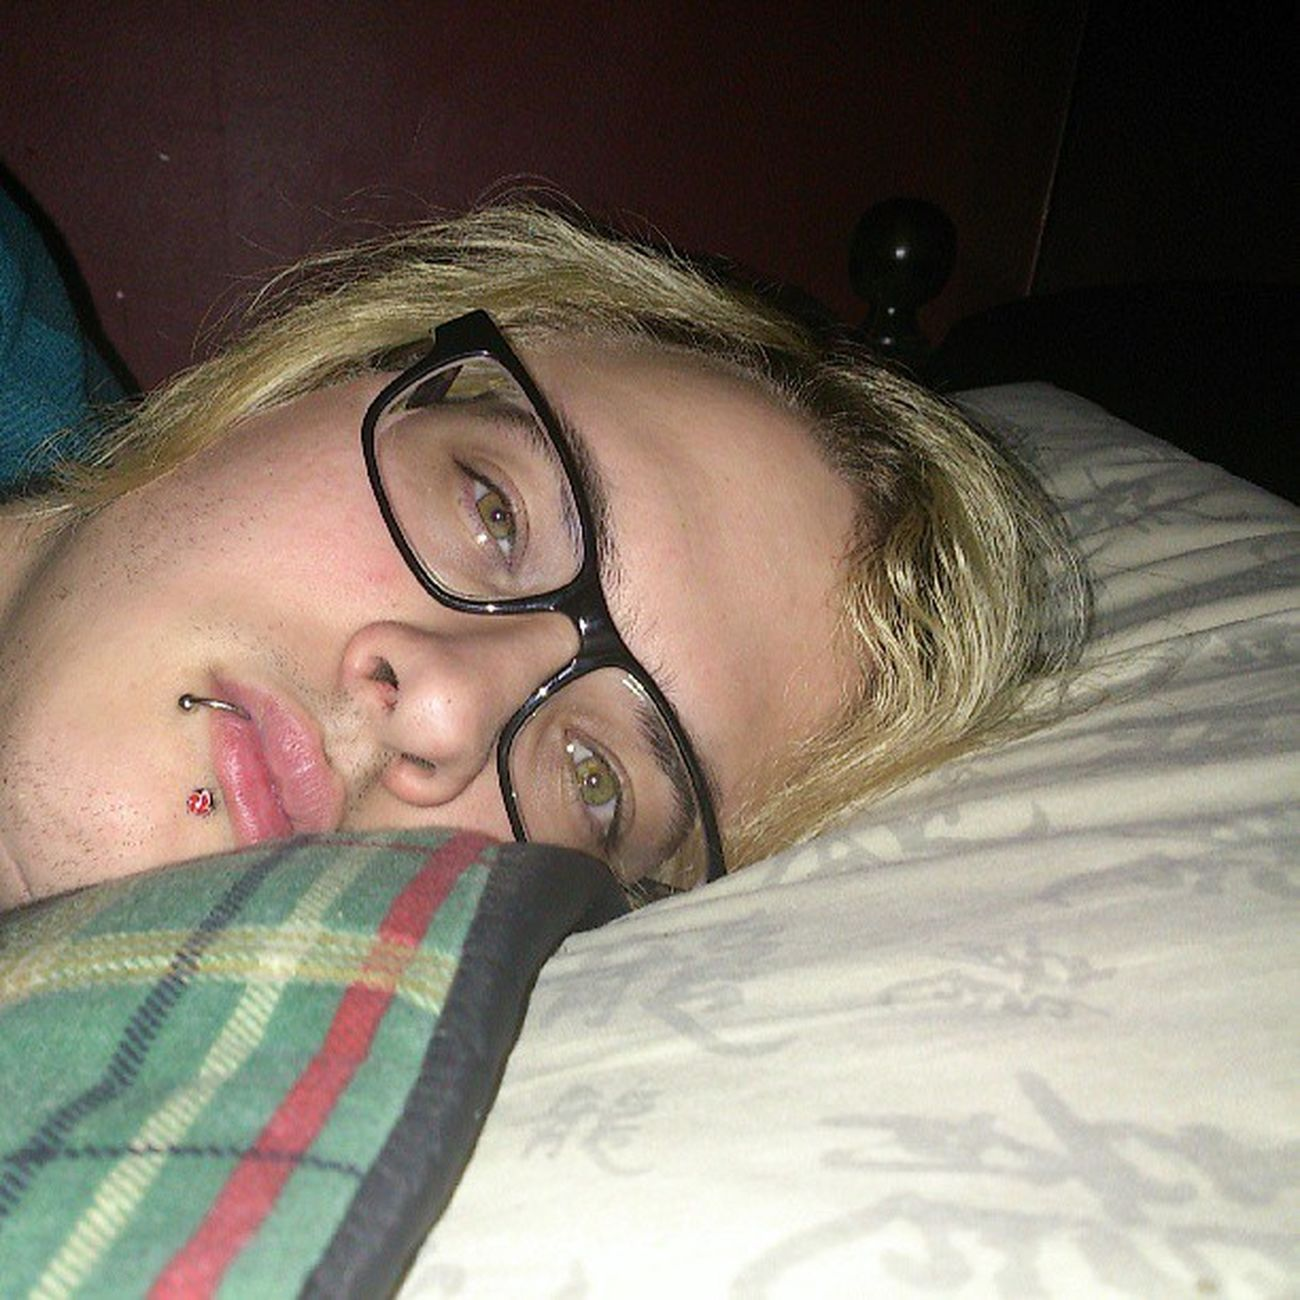 Headed to bed. Night everyone. Guy Tflers Brony Piercing Stretchedlobes Labret Wayfarers Blonde Plugs Snakebites Cbr Captivebeadring Emo Stretchedears Mlp Fim Follow Followme Otaku Kik Me Cute Gauges Guyswithplugs Guyswithstretchedears bodyjewelry evantelico audiencekiller eldritchshy akevantelico91